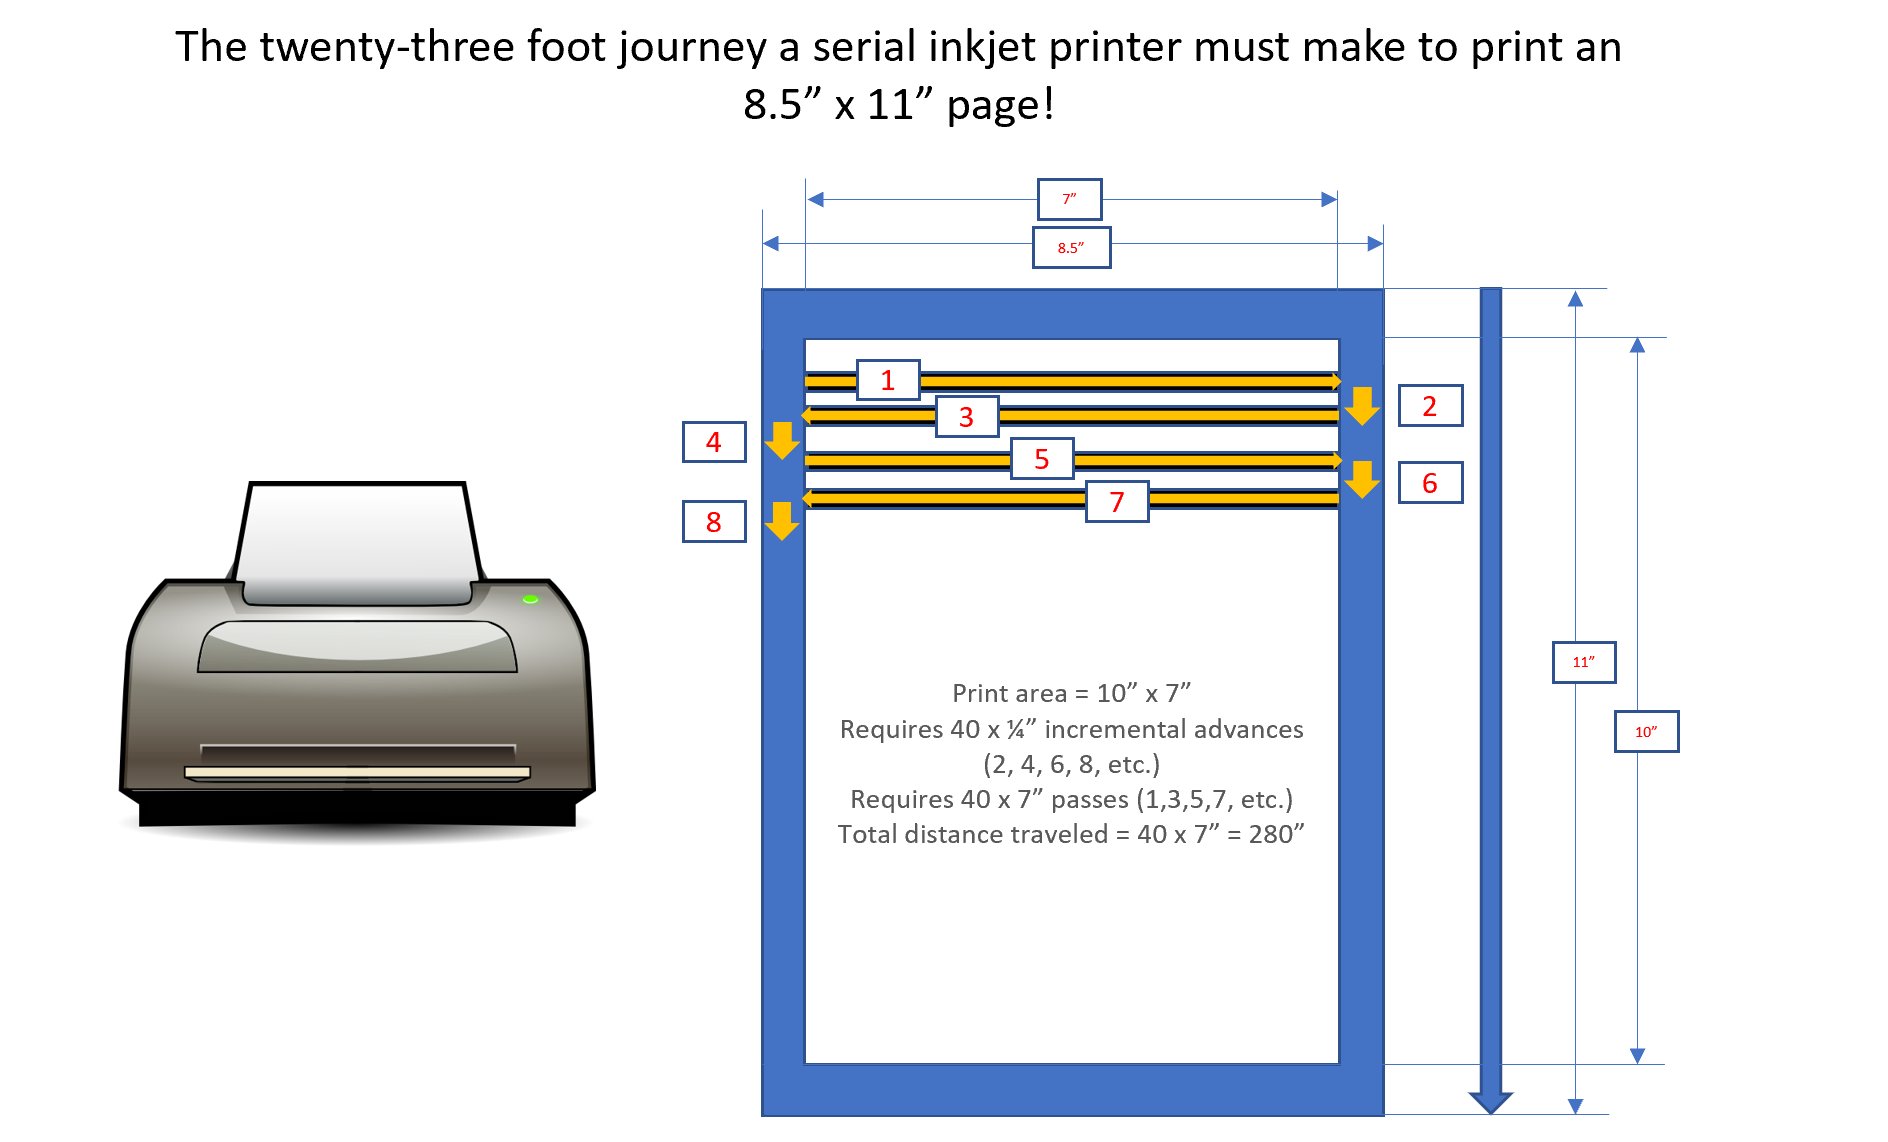 23 foot journey for a serial inkjet printer to print one page